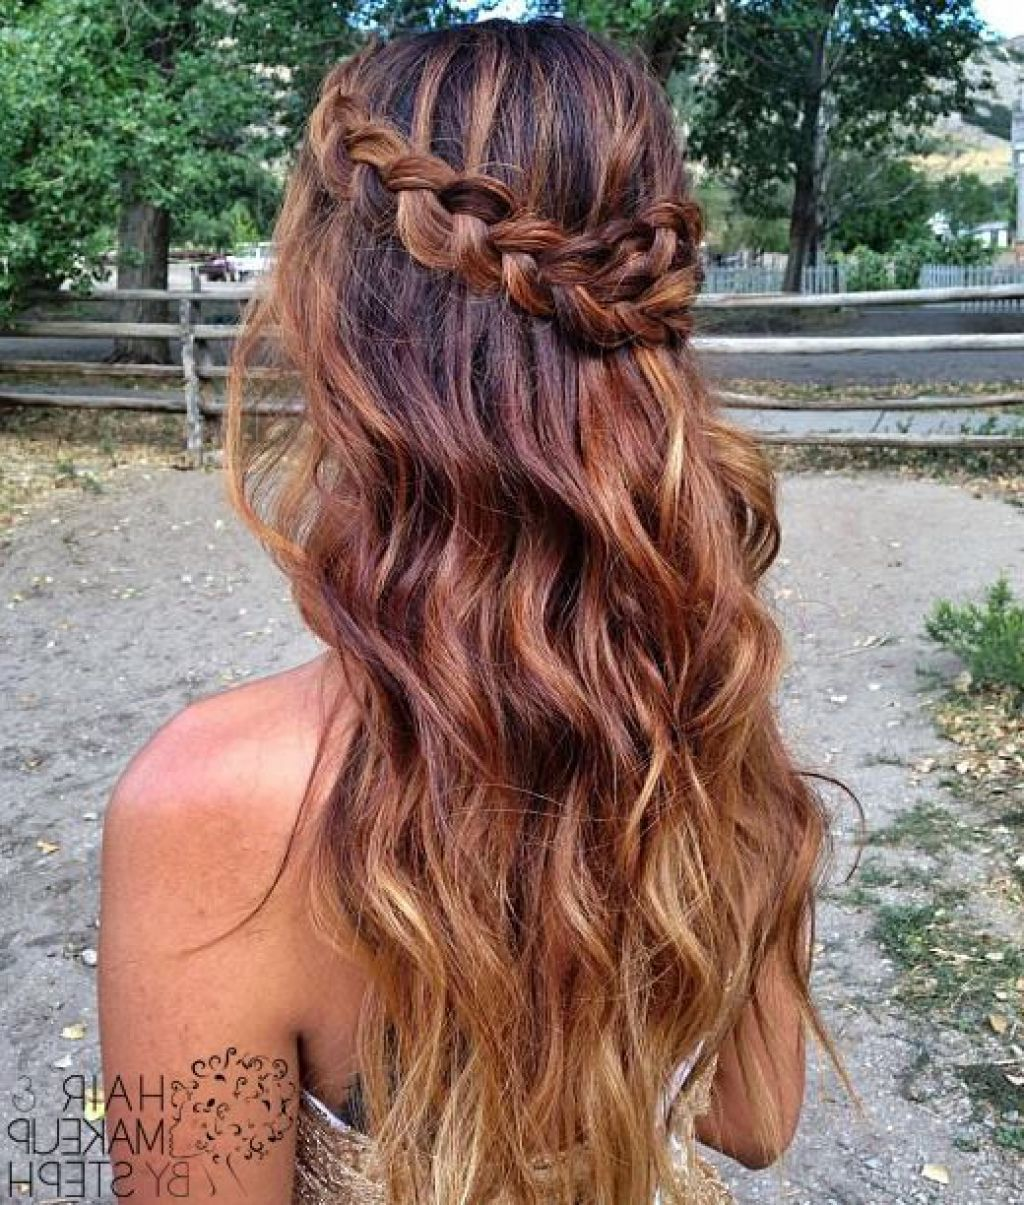 Half Up Half Down Prom Hairstyles Hairstyle Down Hairstyles Long Ombre Hair Long Hair Styles